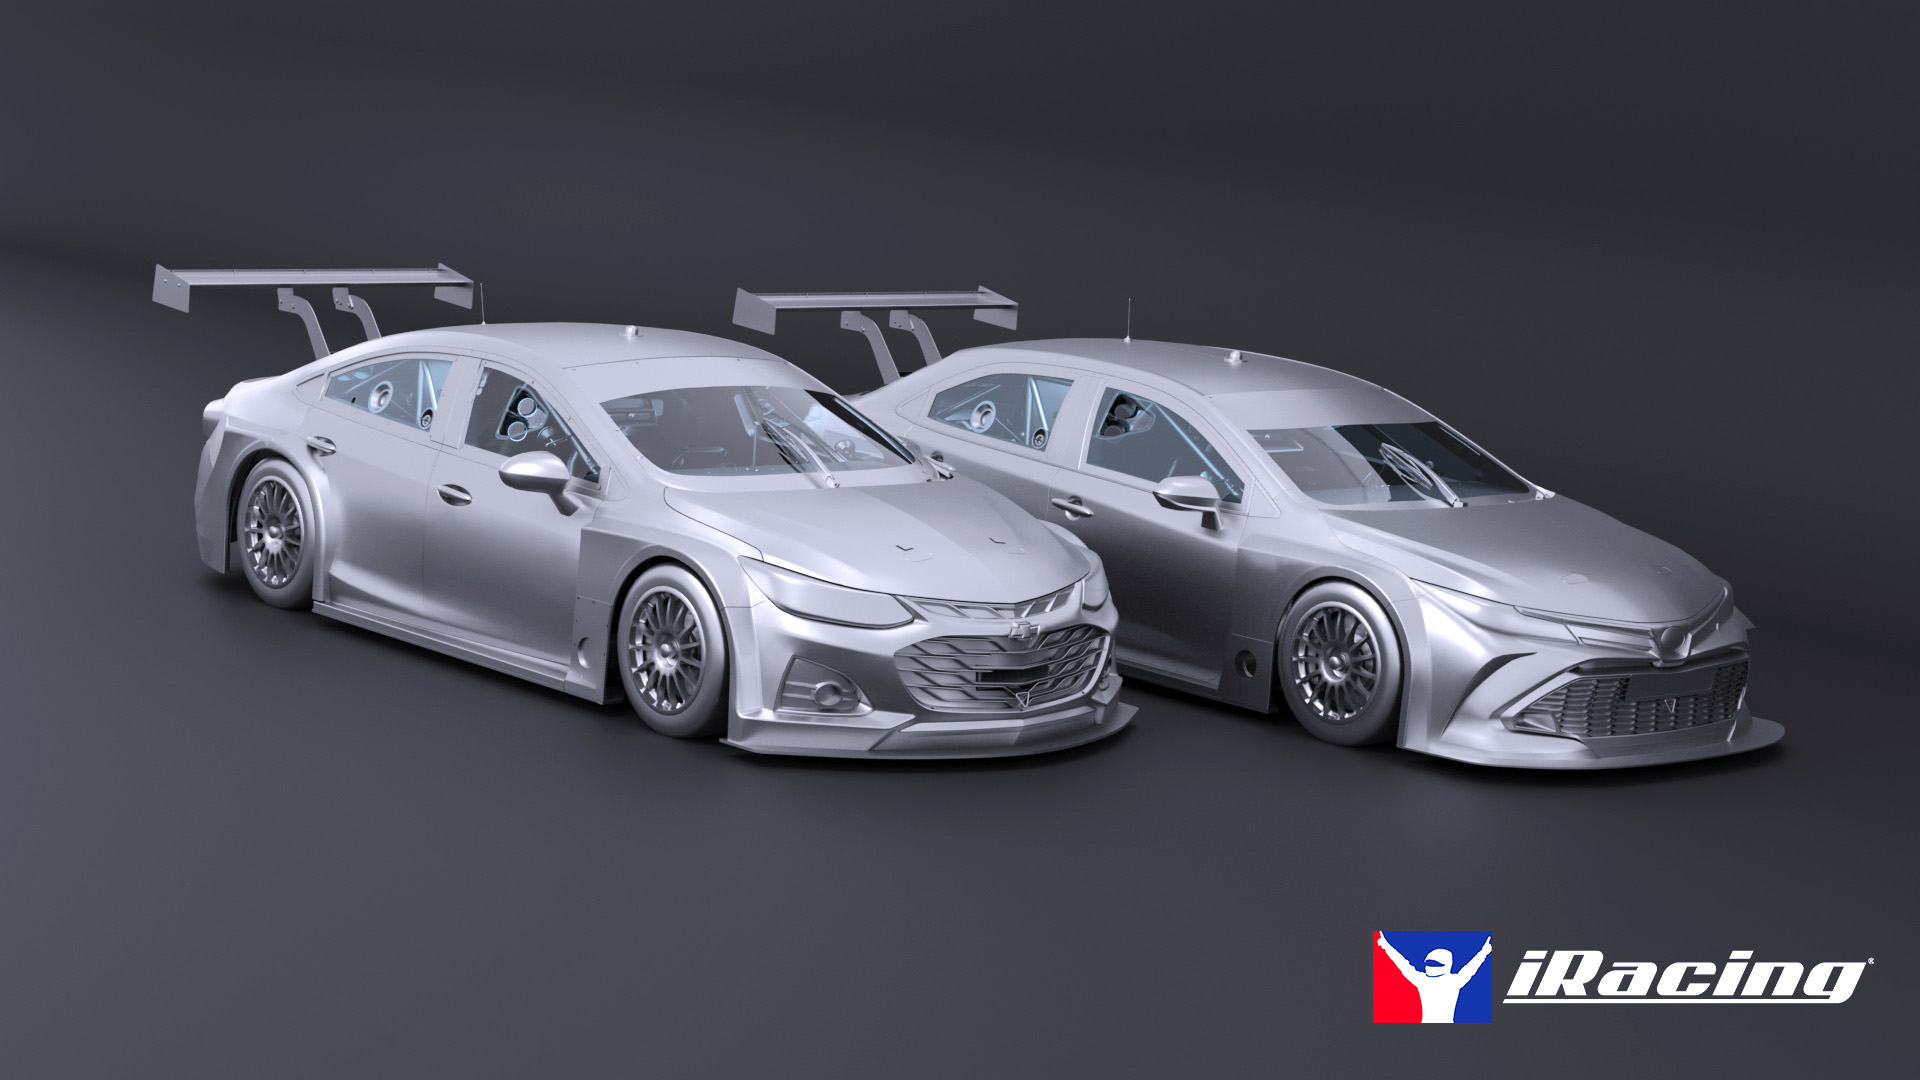 Brazilian Stock Car Pro Series cars coming to iRacing in 2022